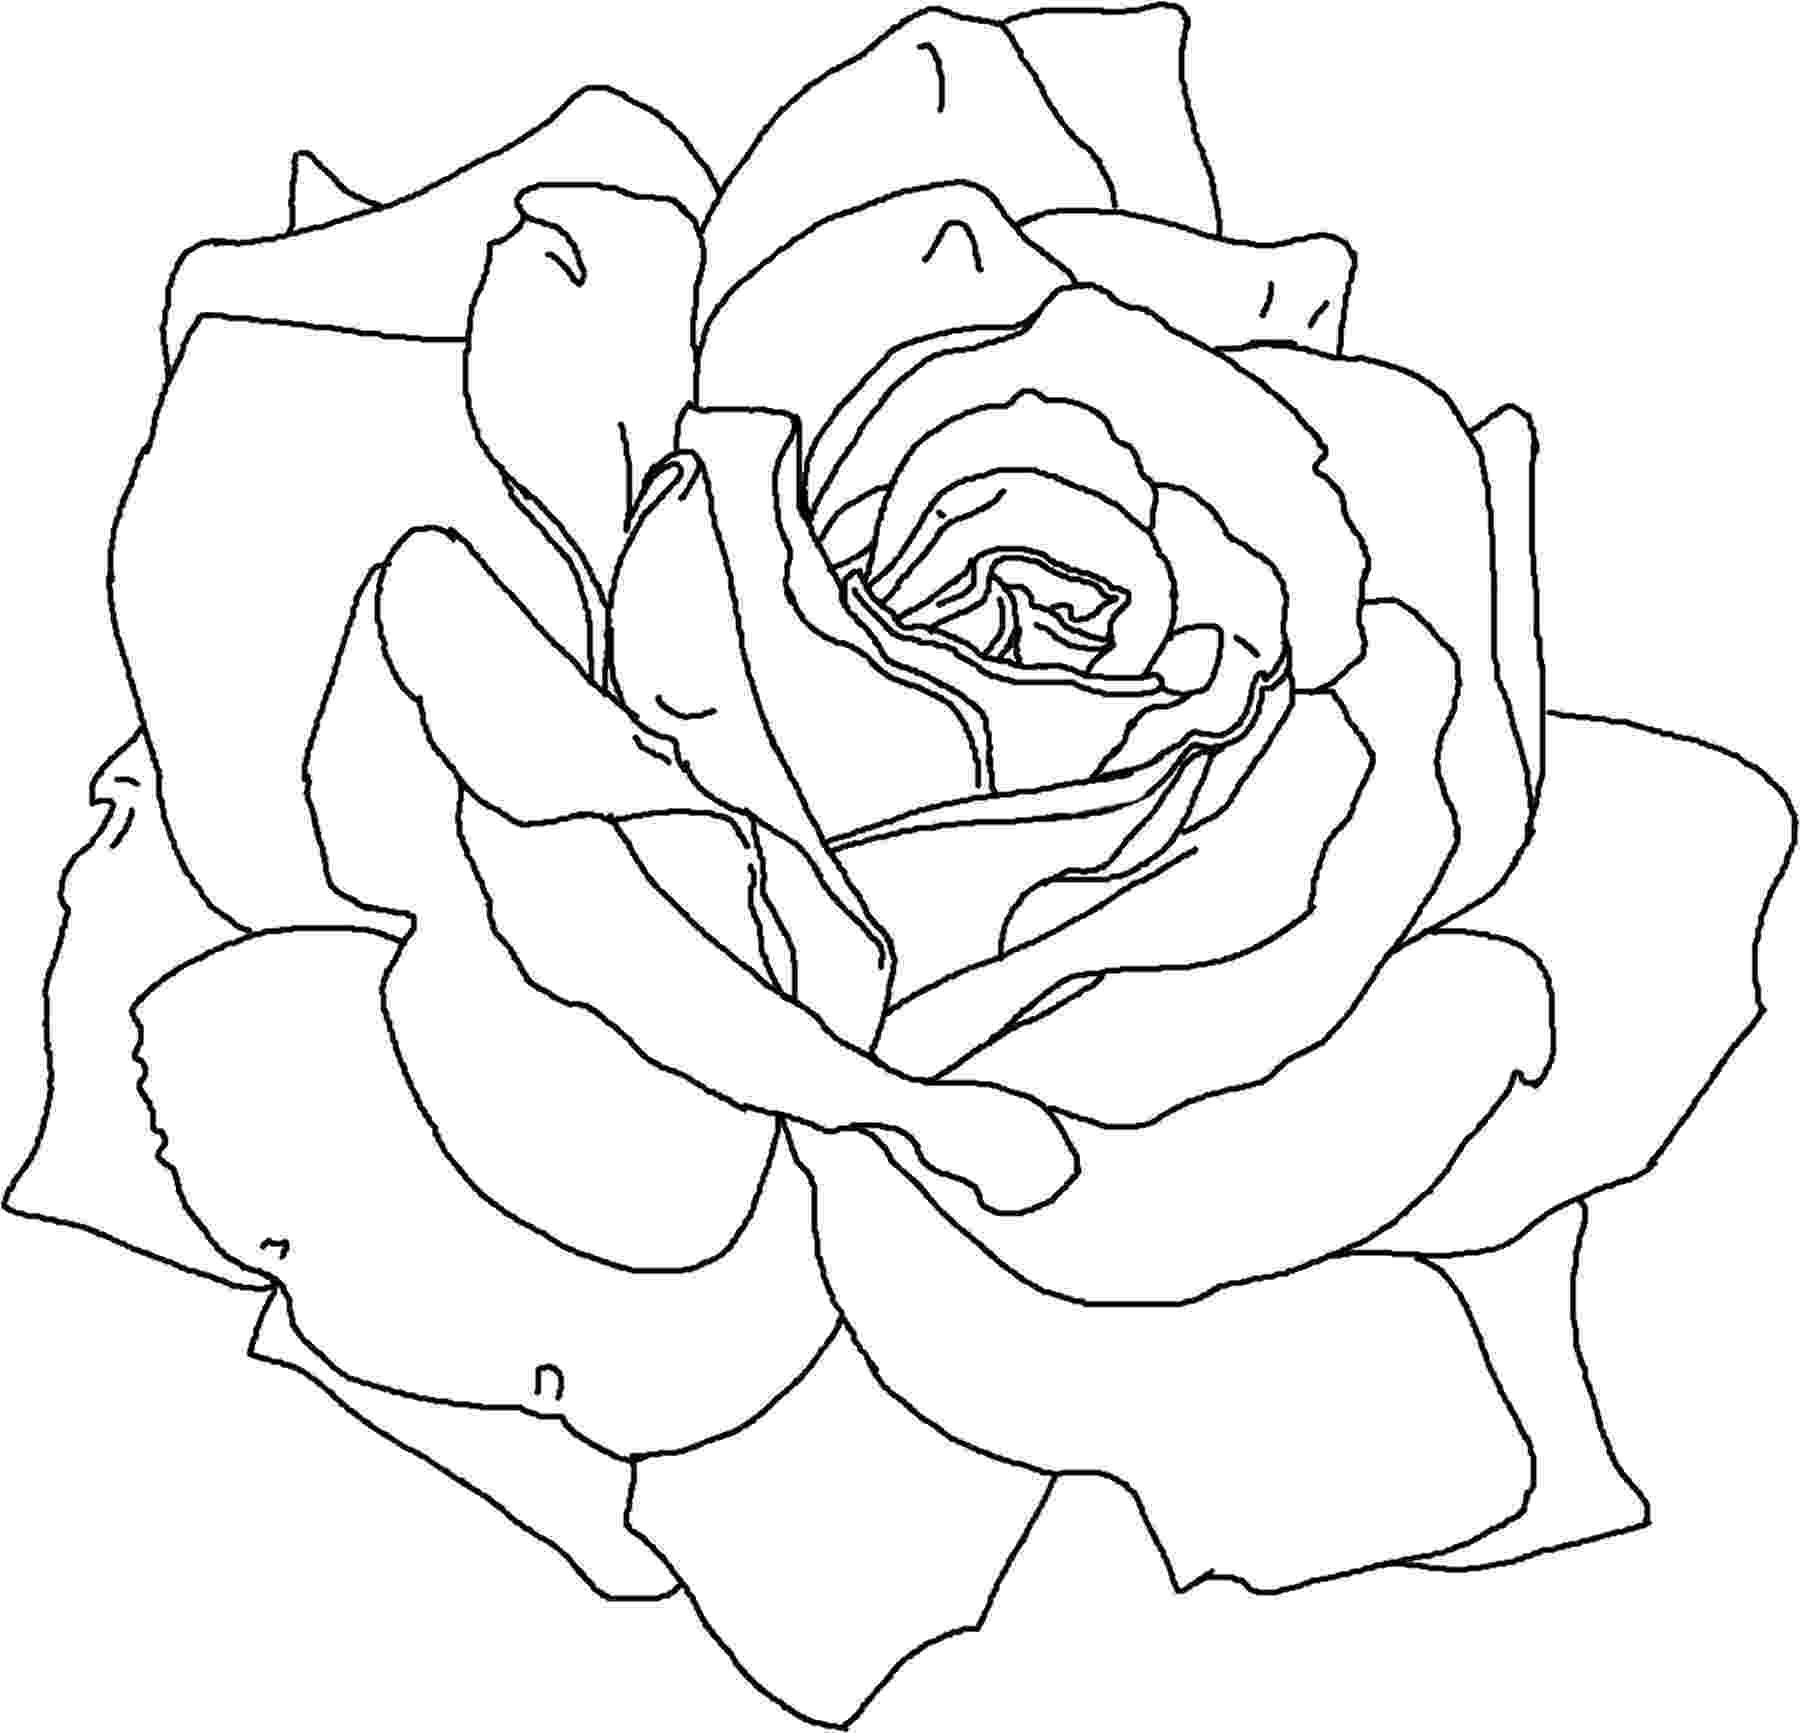 flower printable pictures free printable hibiscus coloring pages for kids flower printable pictures